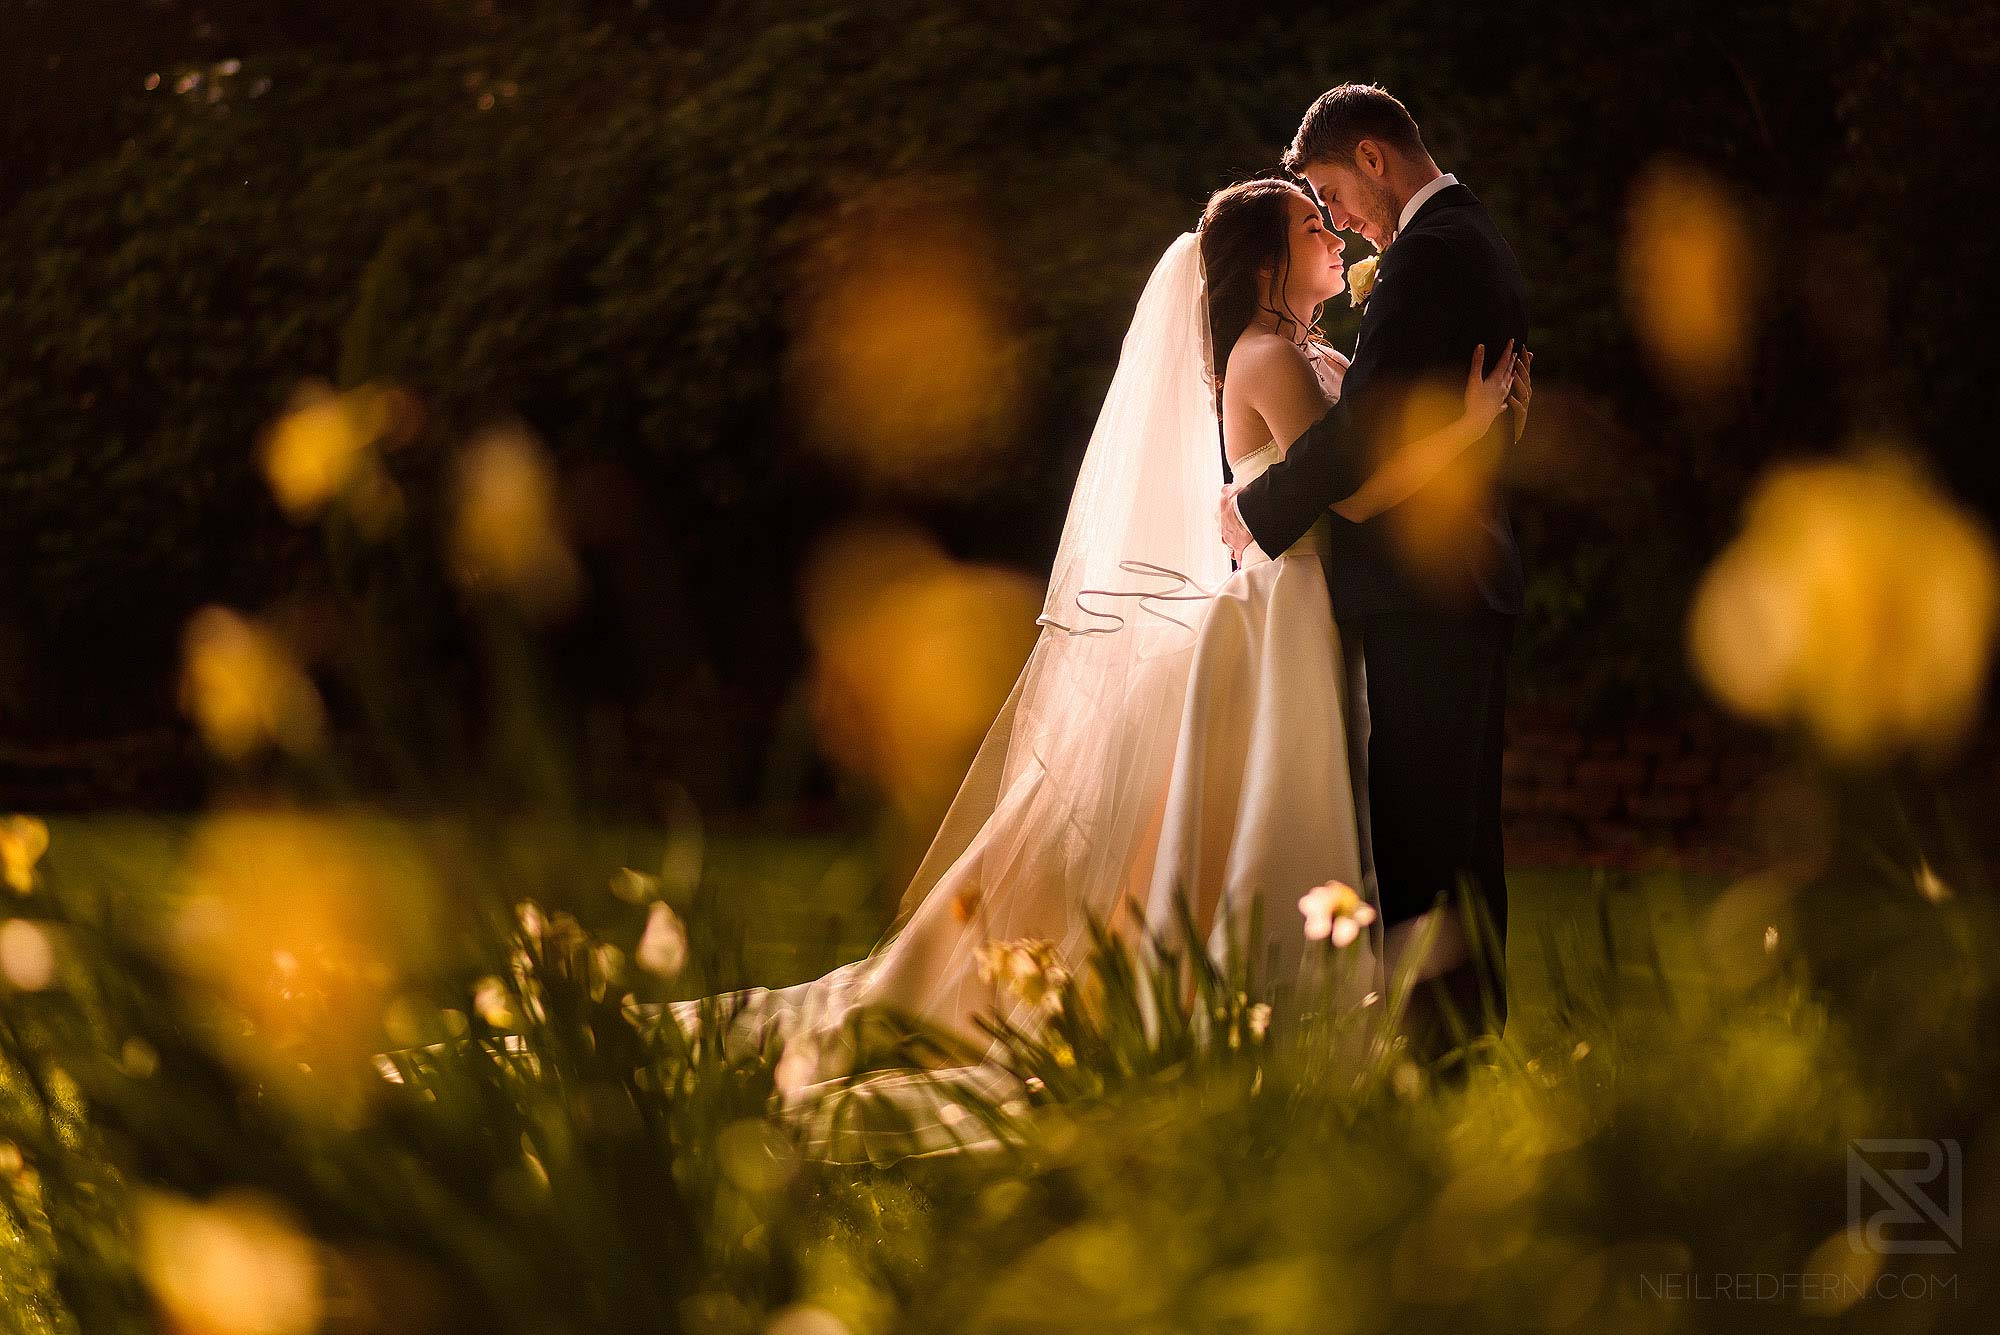 portrait of bride and groom in natural light